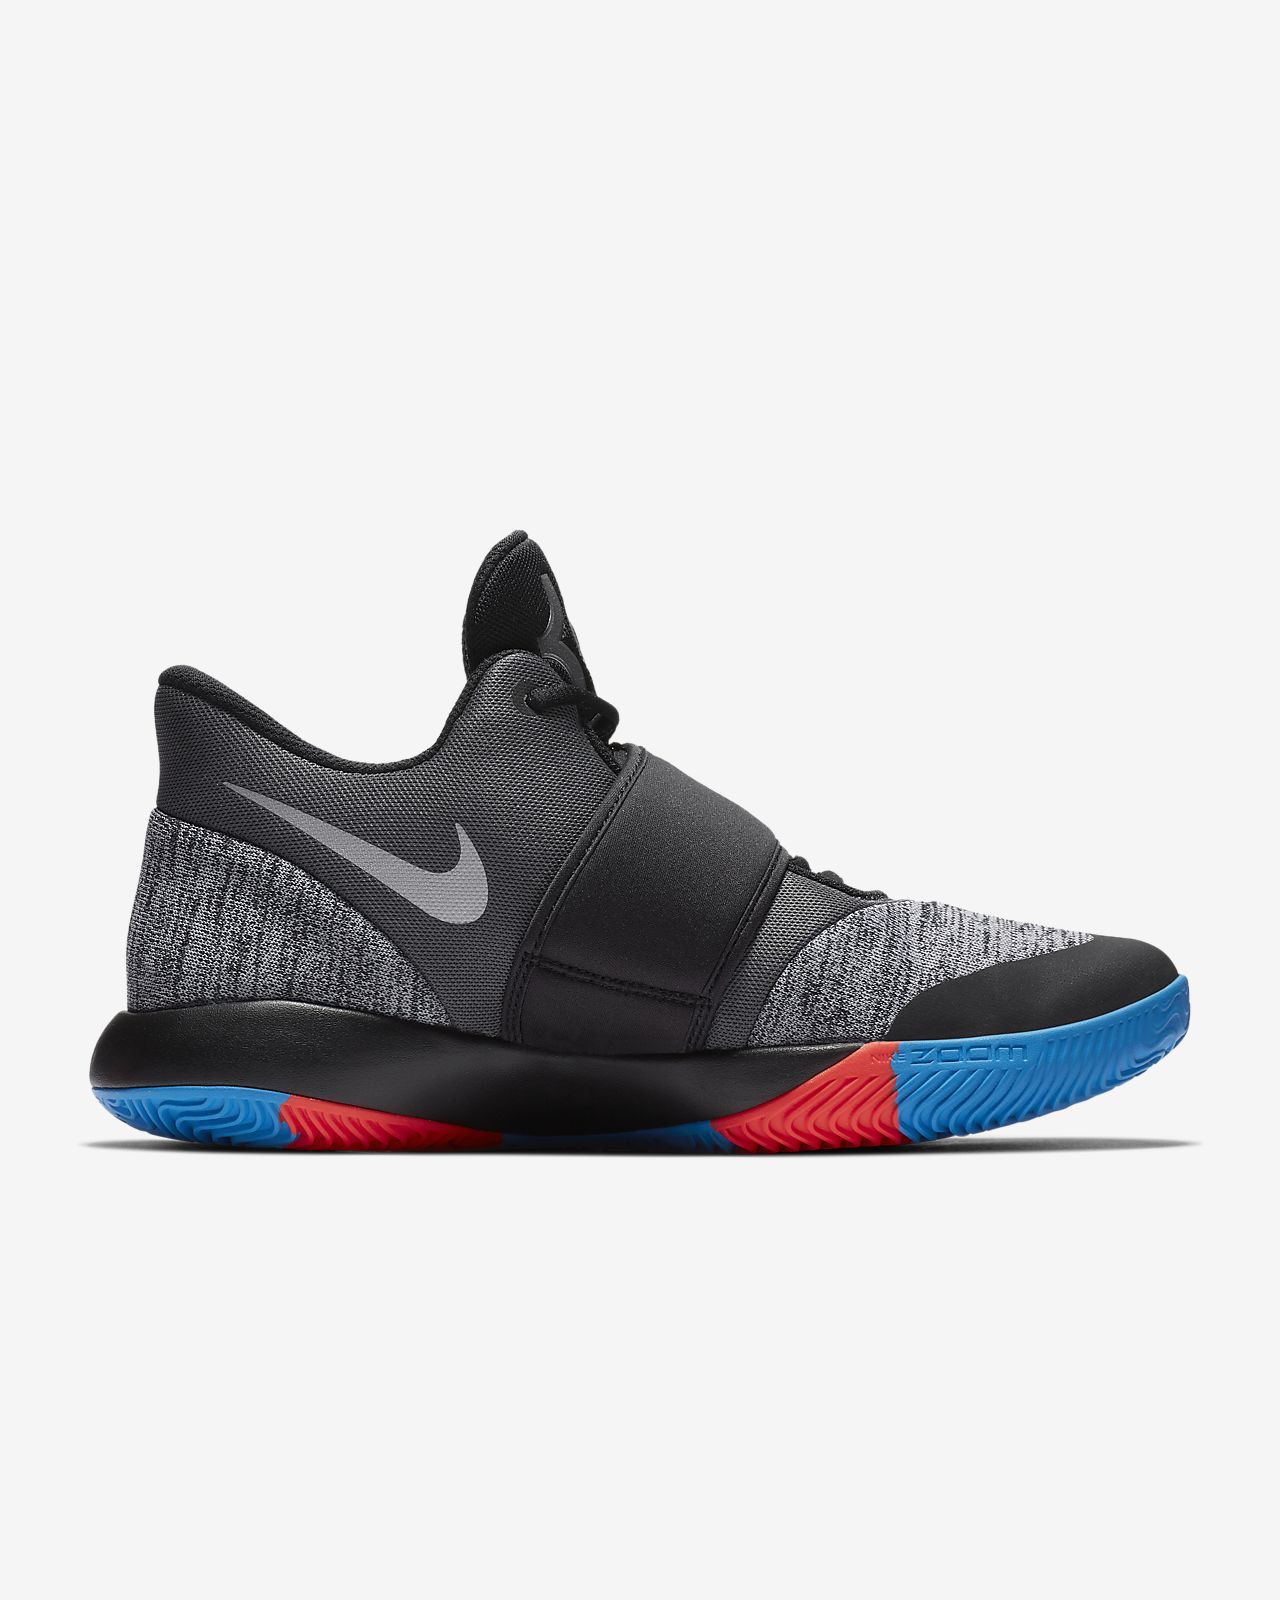 828e8c08fb05 Nike KD Trey 5 VI Basketball Shoe. Nike.com